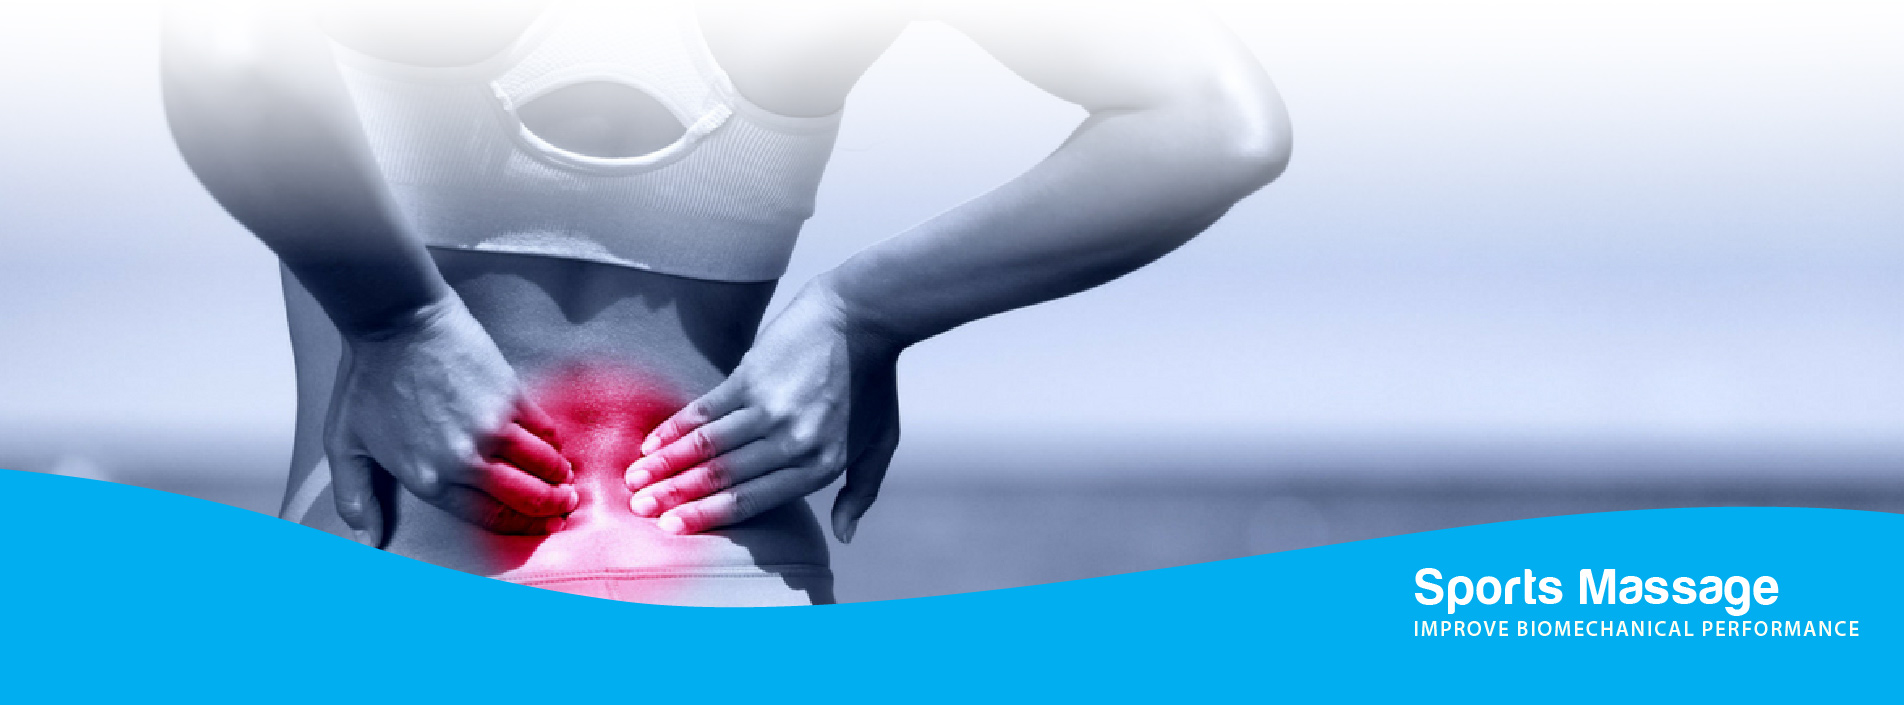 Sports Massage Header gradient2